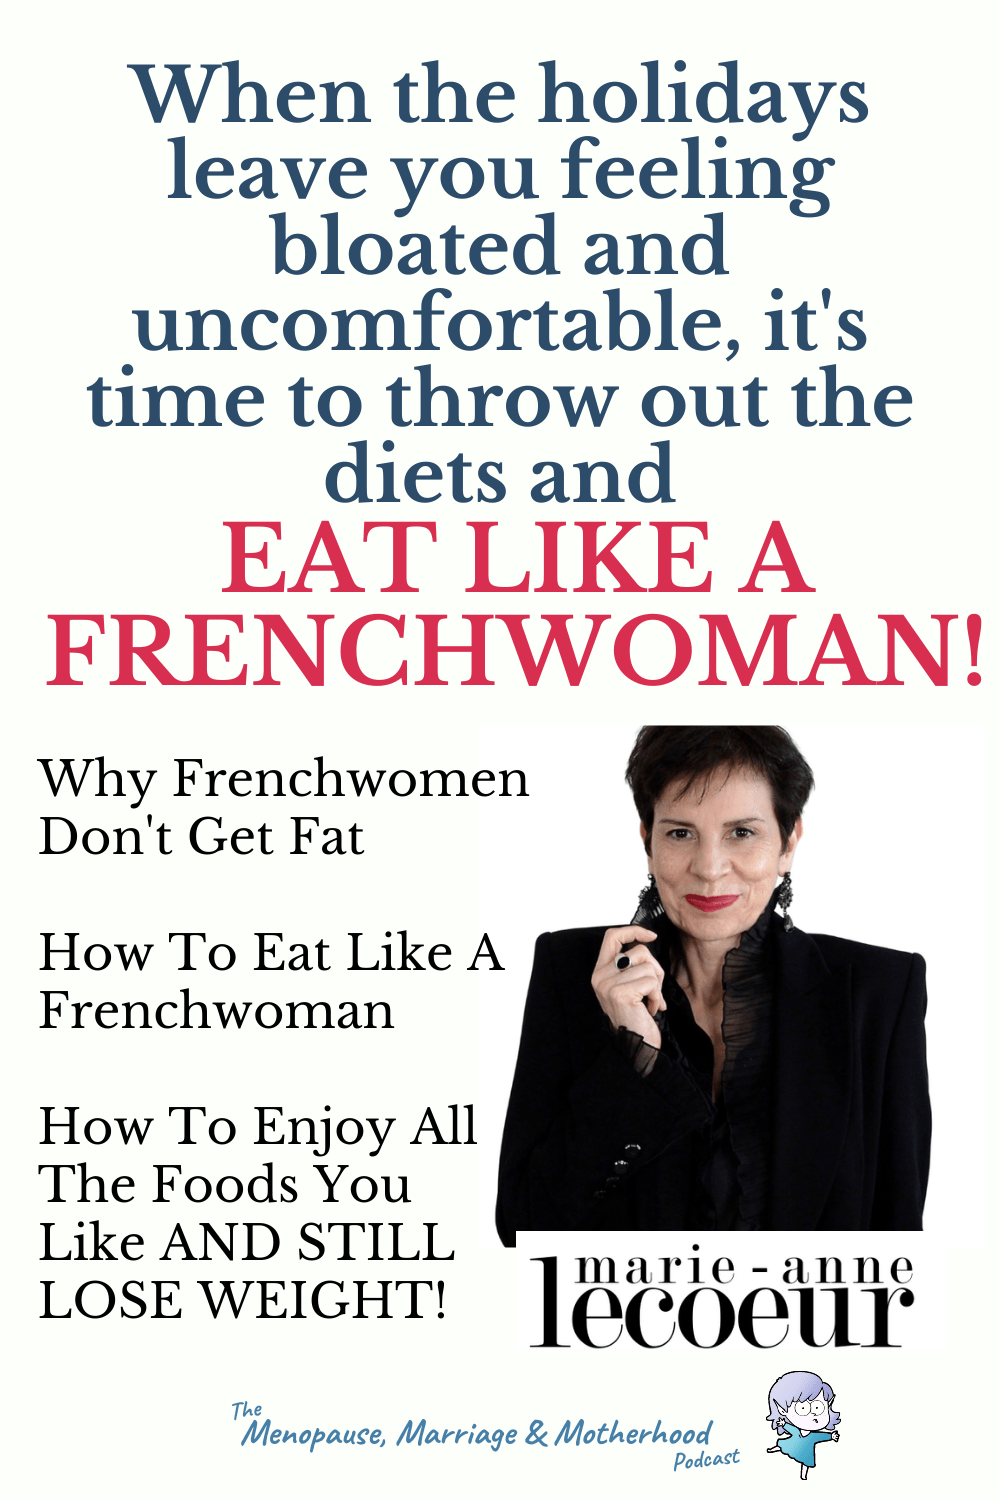 How To Eat Like A French Woman with Marie-Anne LeCoeur